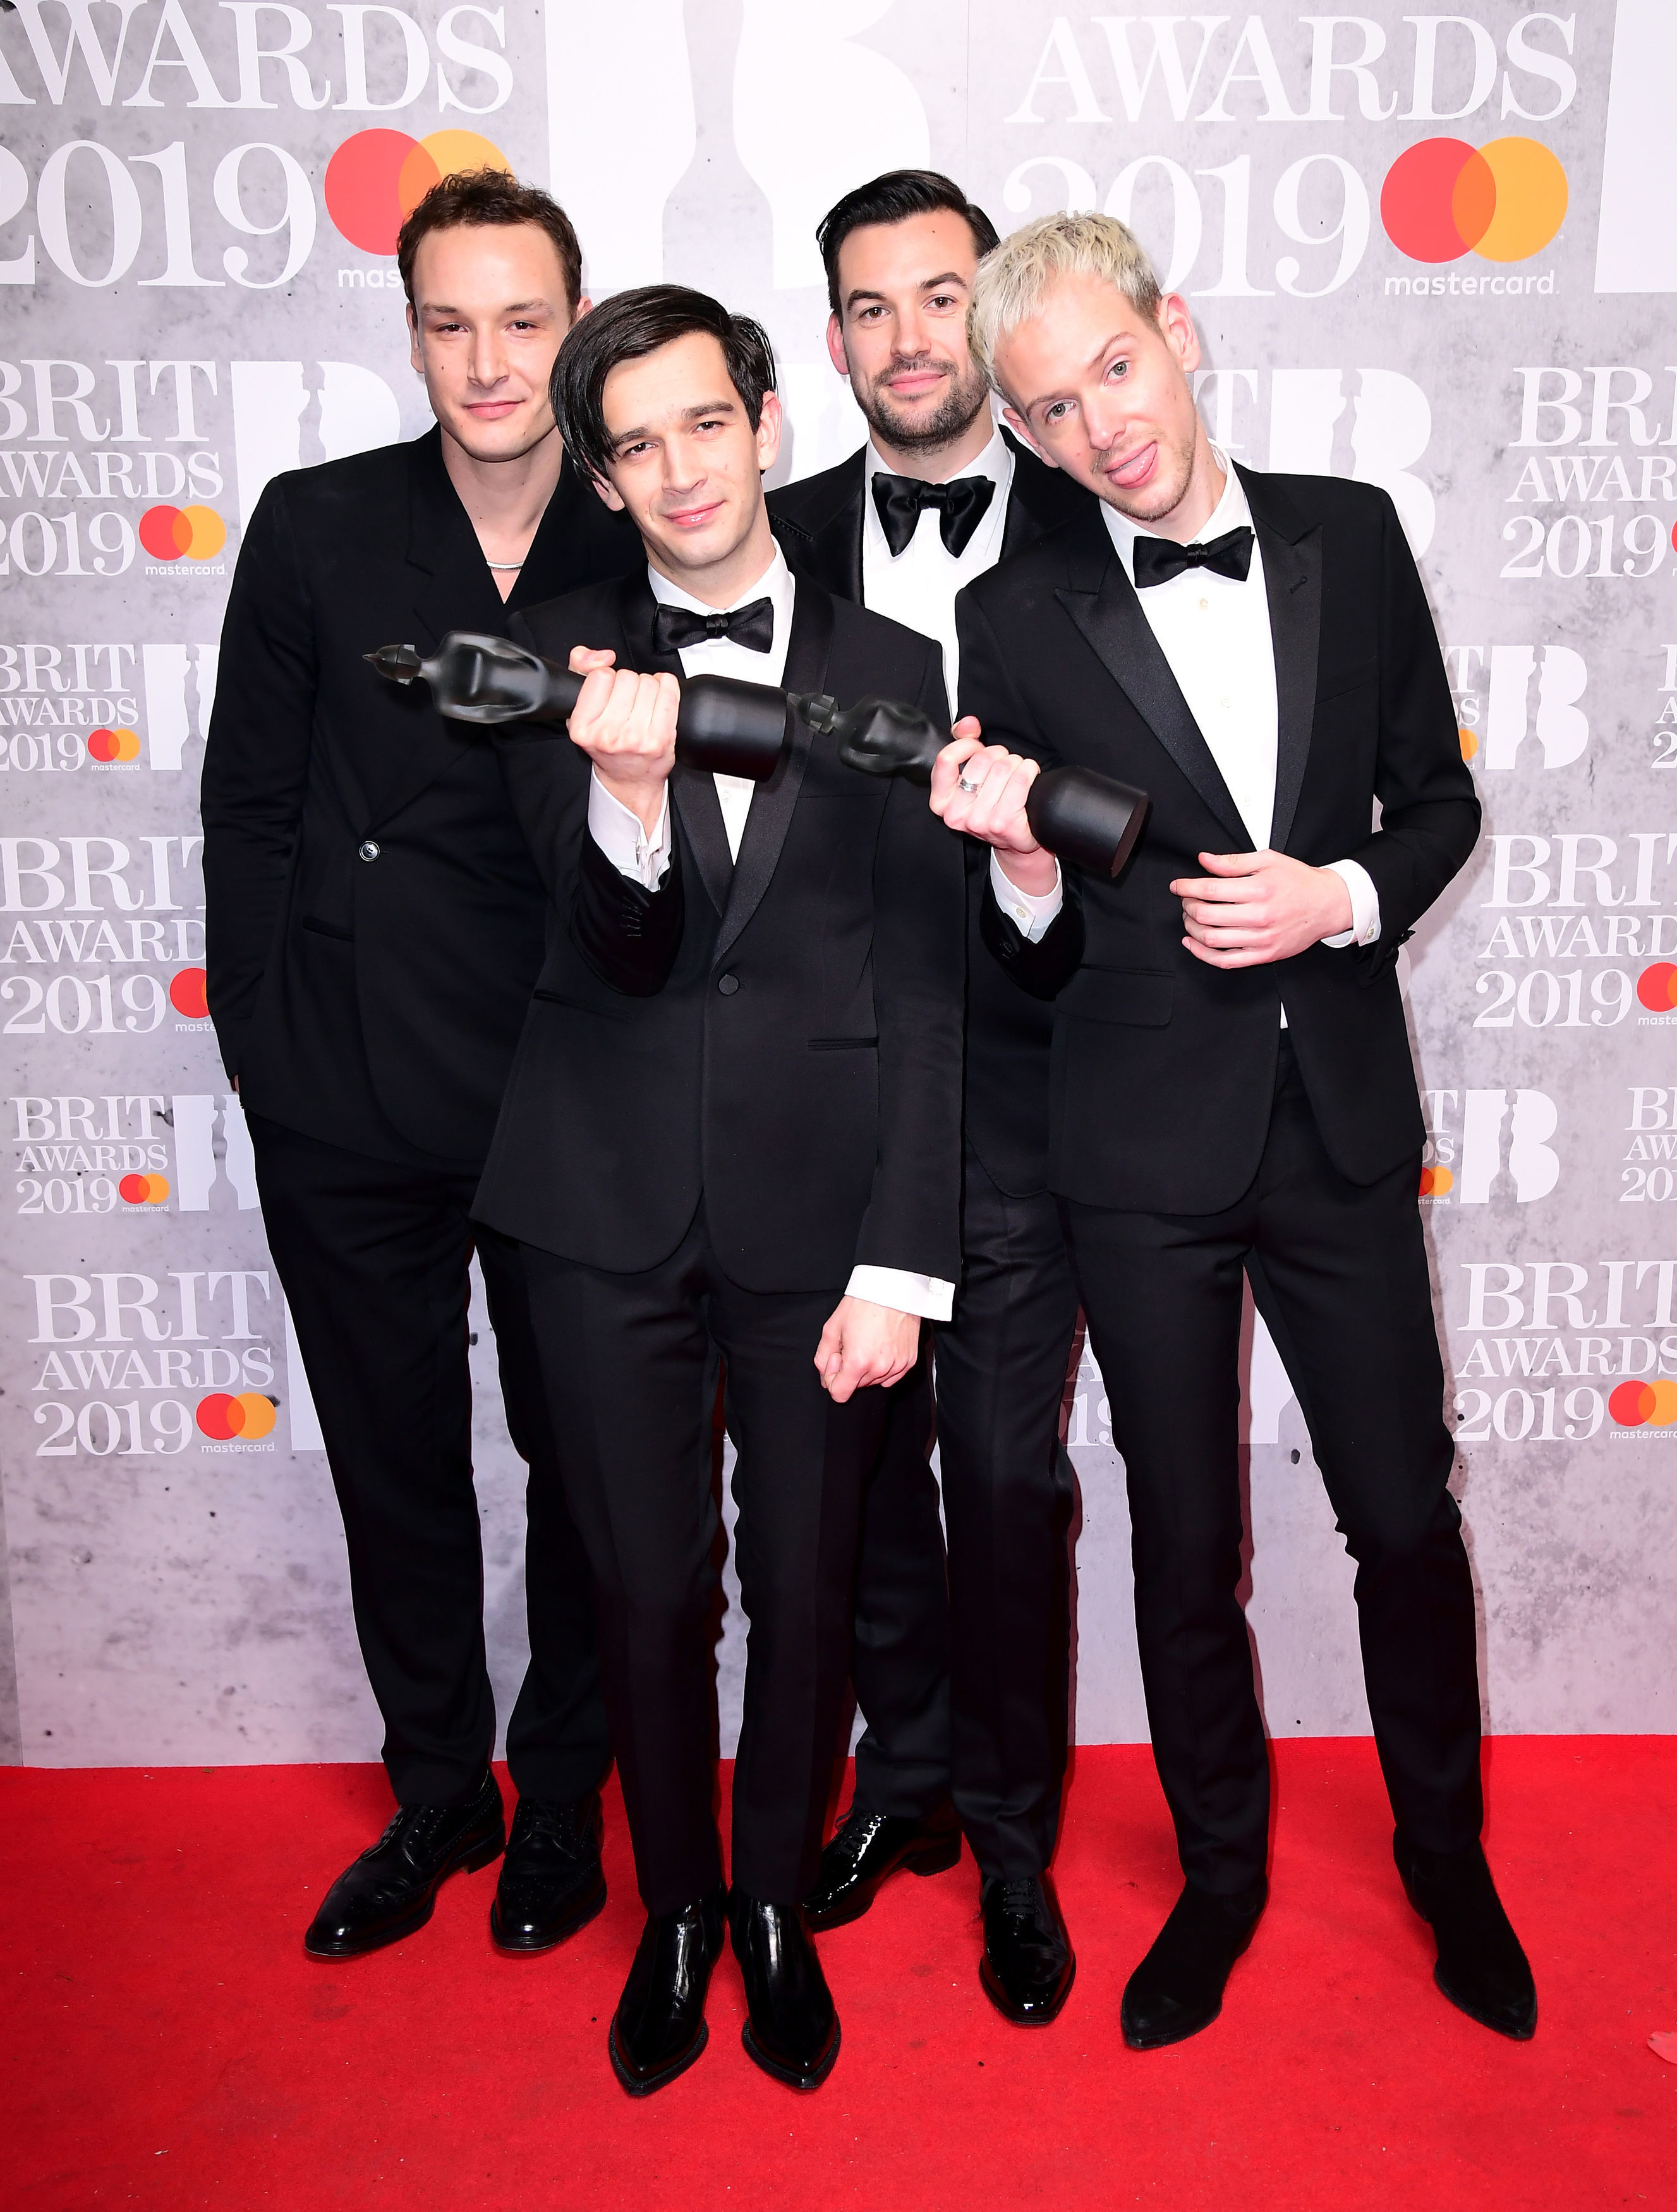 Matthew Healy, Ross MacDonald, George Daniel and Adam Hann of The 1975 with their Best British Group and Mastercard British Album of the Year Brit Awards